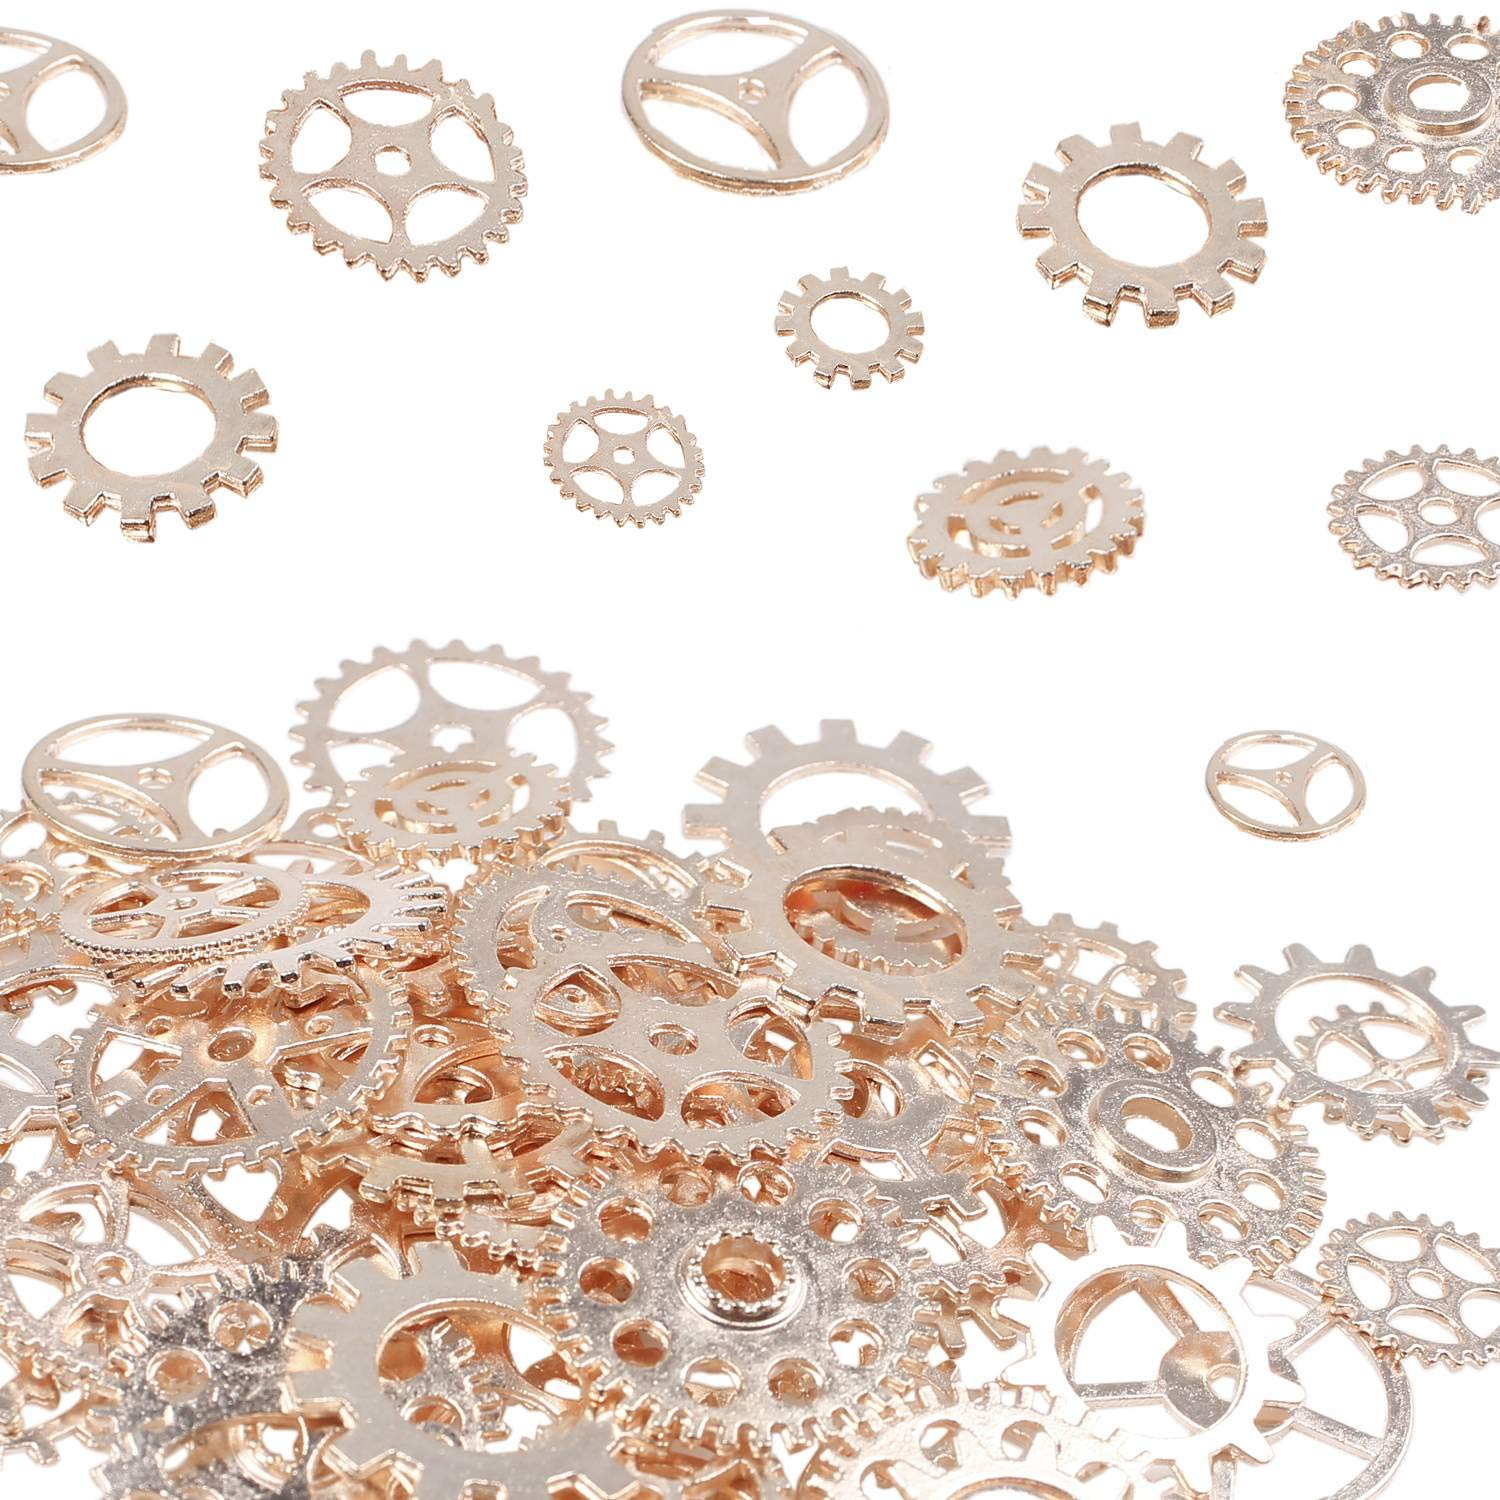 BIHRTC 100 Gram DIY Assorted Color Antique Metal Steampunk Watch Gears Cog Wheel Charms Pendants Craft Steampunk Accessories for DIY Crafting, Jewelry Making(Rose Gold)